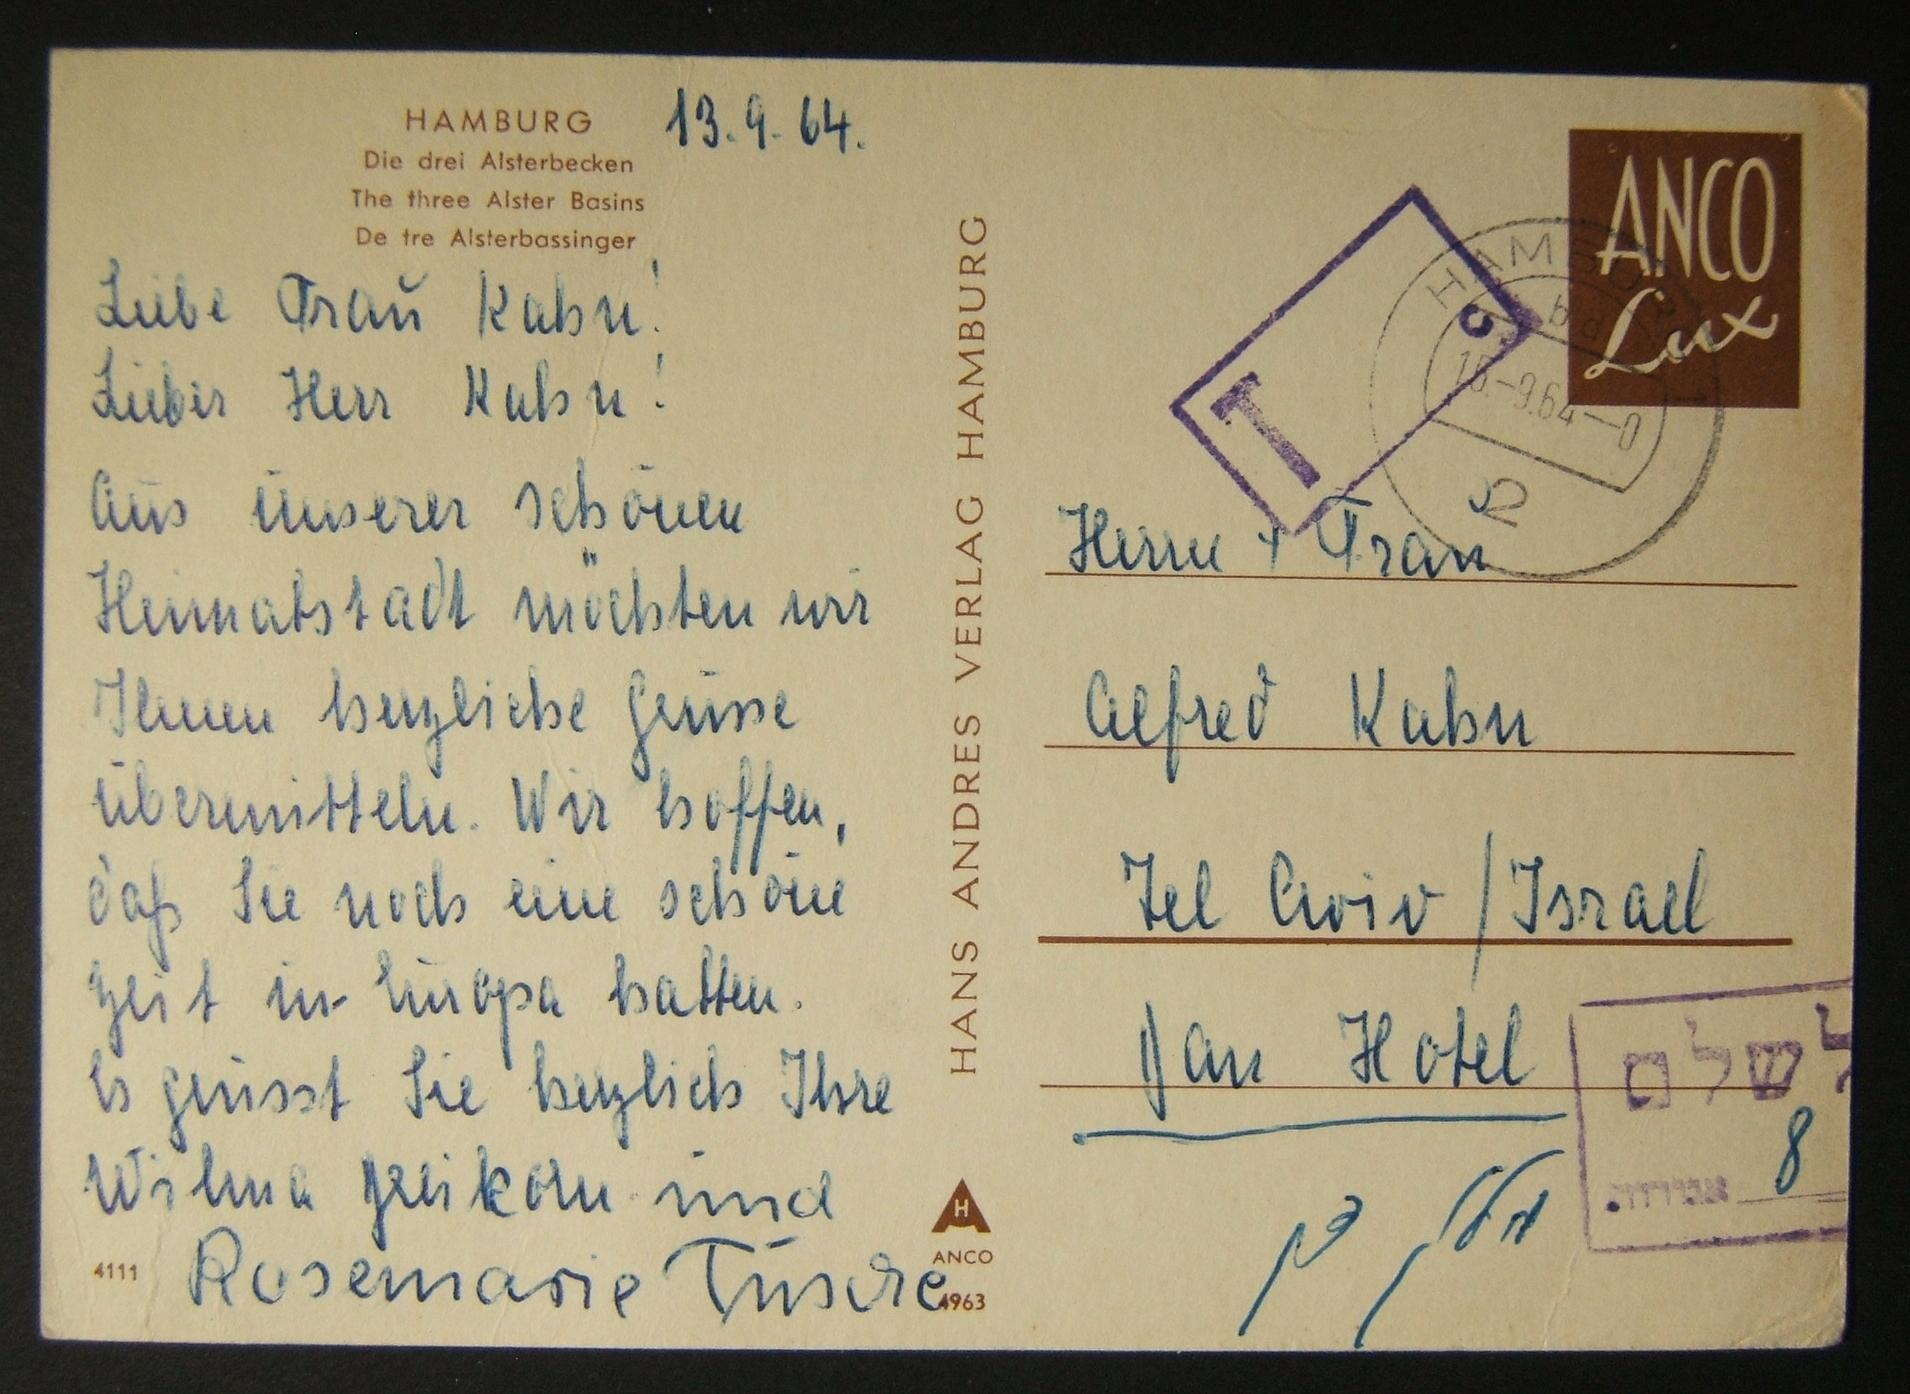 1964 incoming German taxed mail: 15-9-1964 ppc Hamburg ex HAMBURG to TLV mailed unfranked and taxed in Israel 8 Agorot; lacking transit pmks, probably sent by airmail.